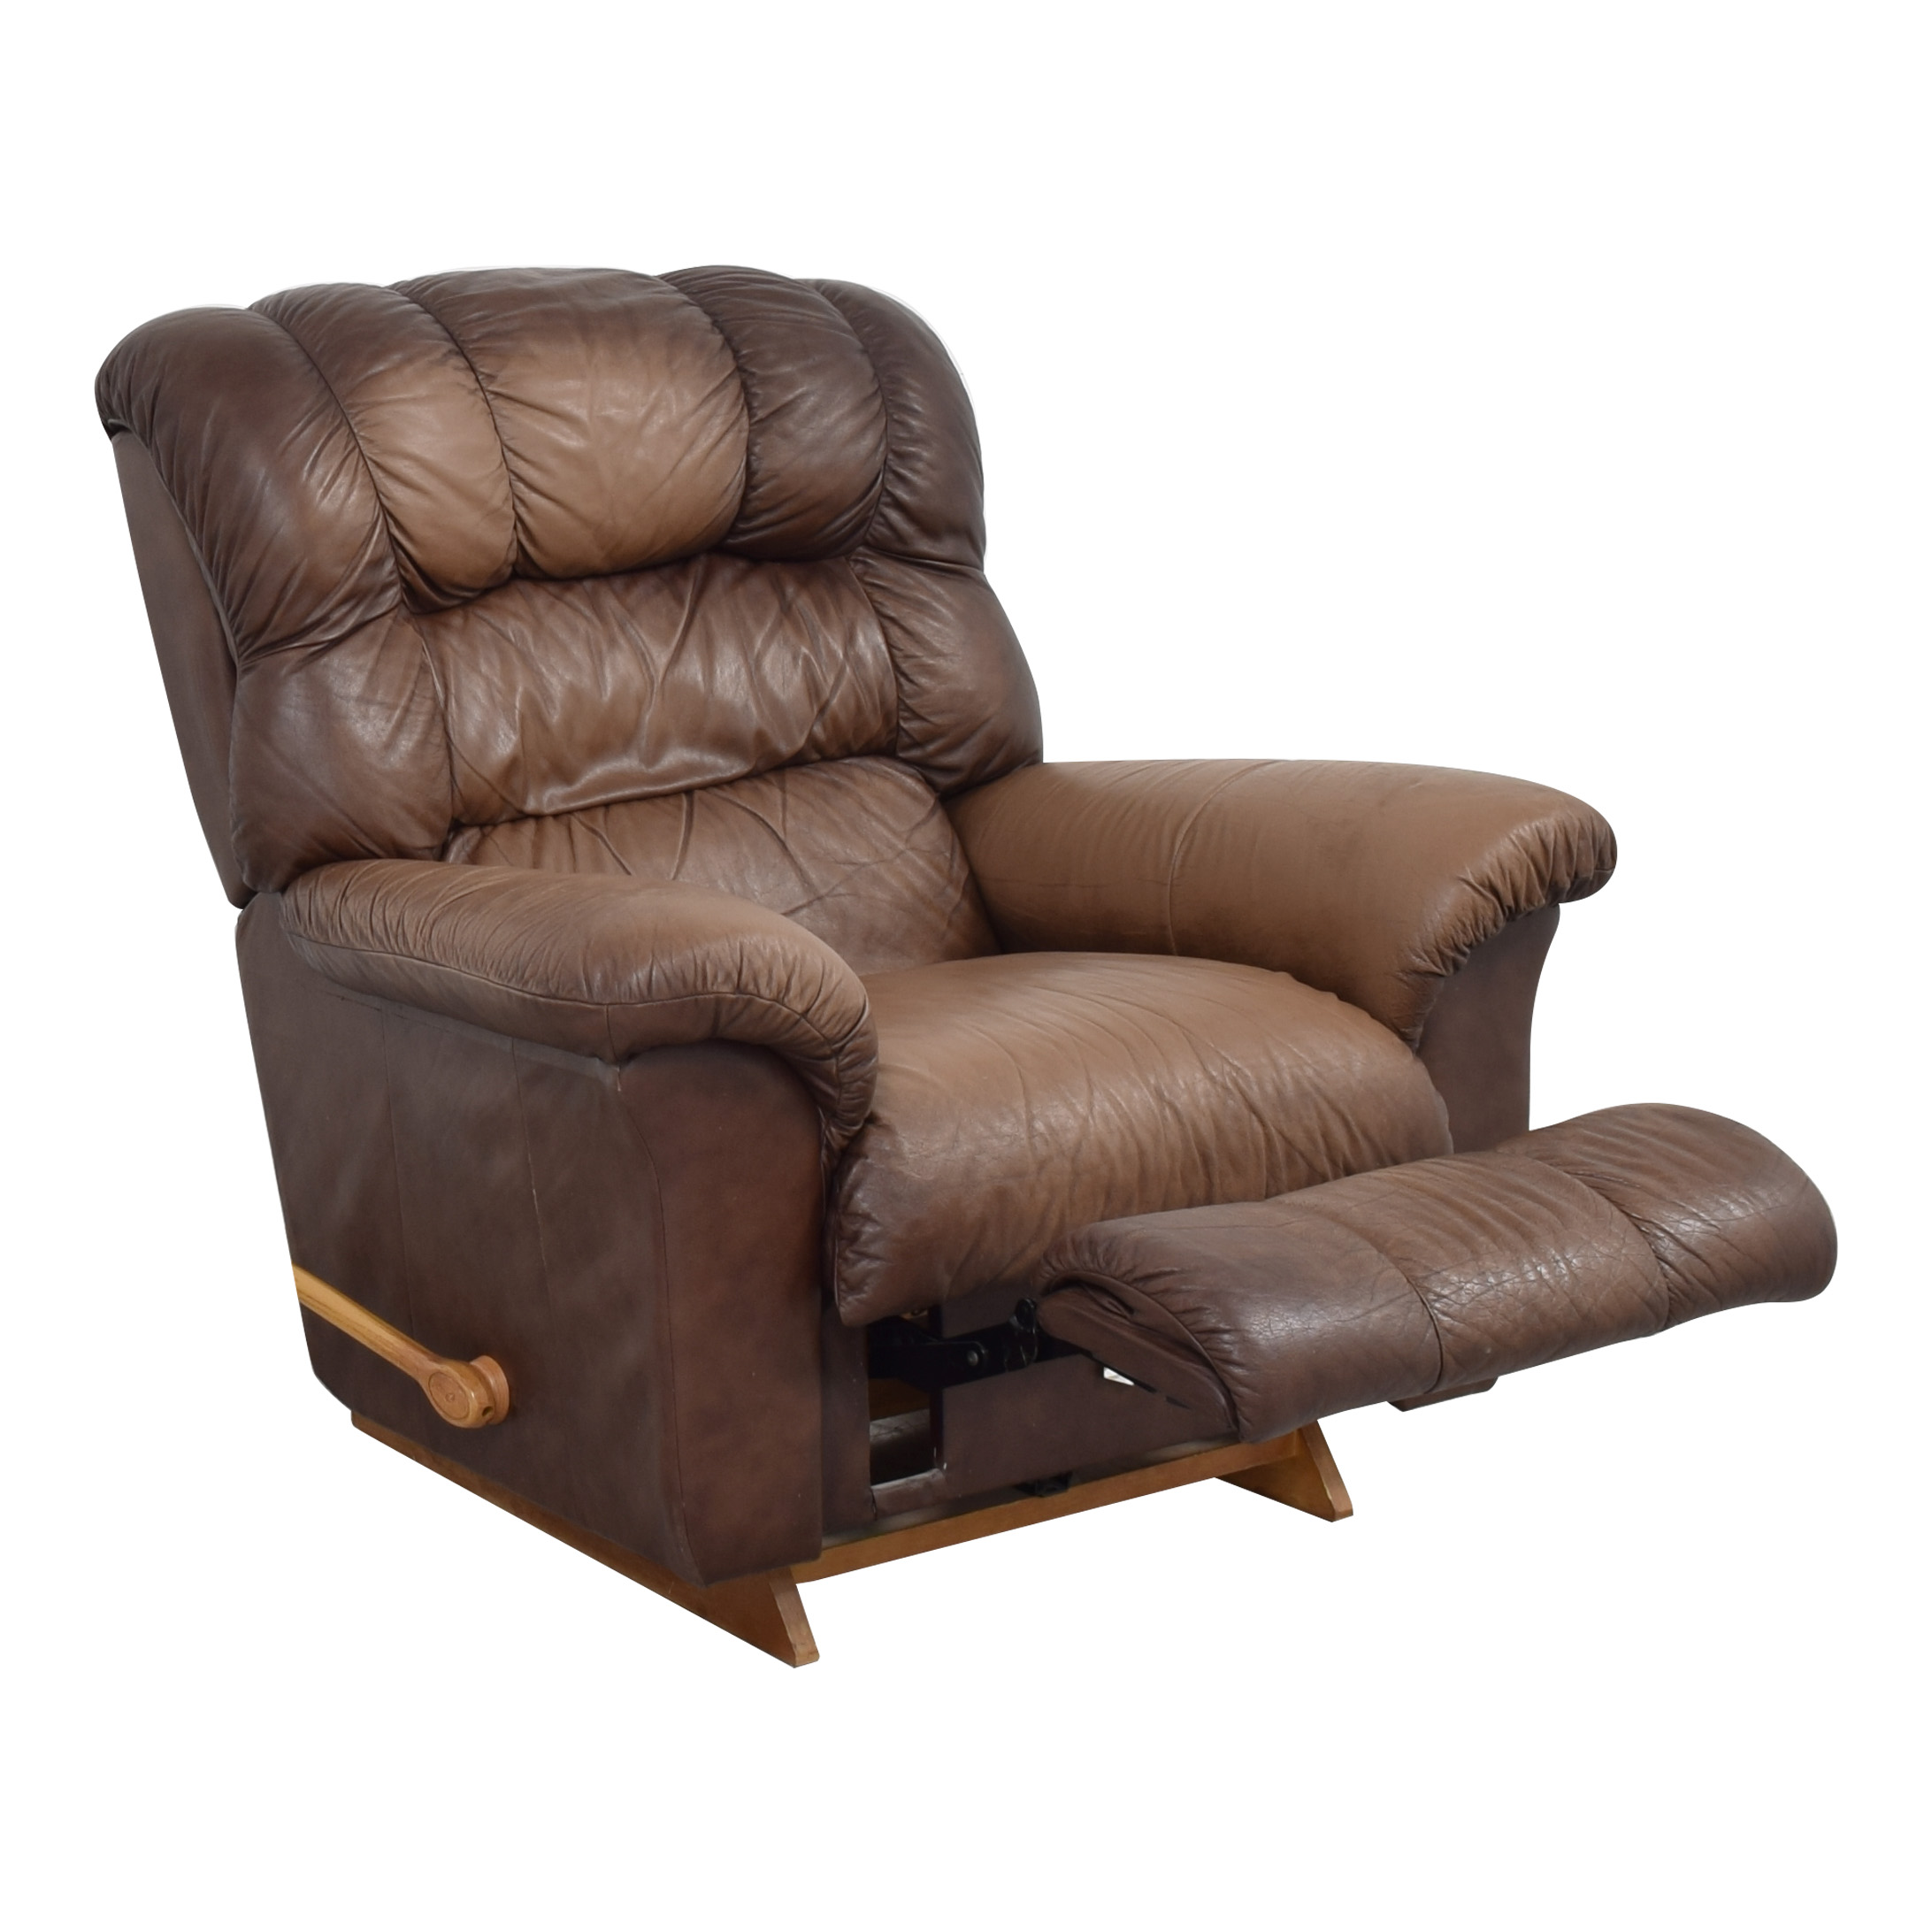 La-Z-Boy La-Z Boy Recliner for sale